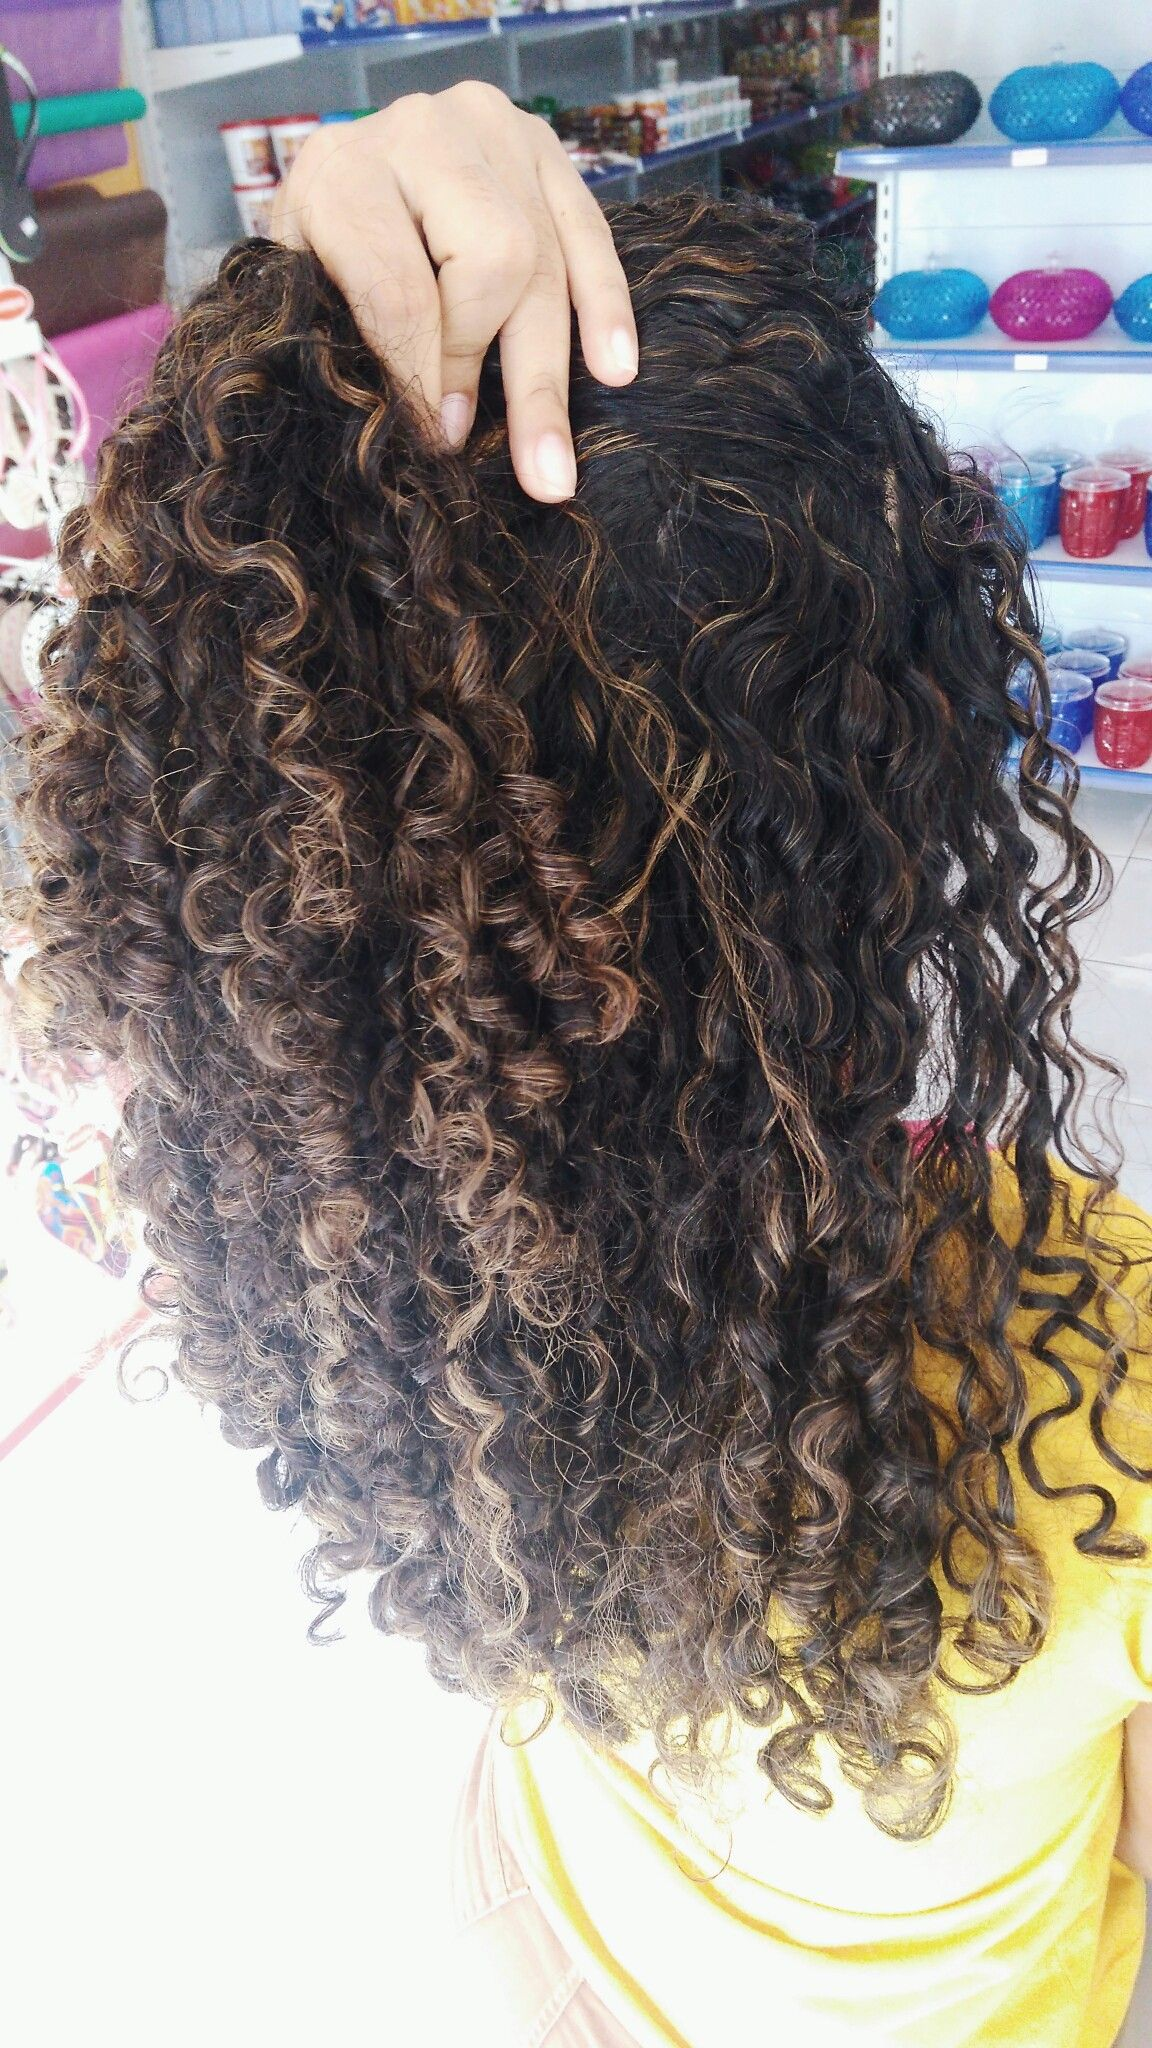 Pin by Camille HARRISON on Hair Stuff Pinterest Curly Curly